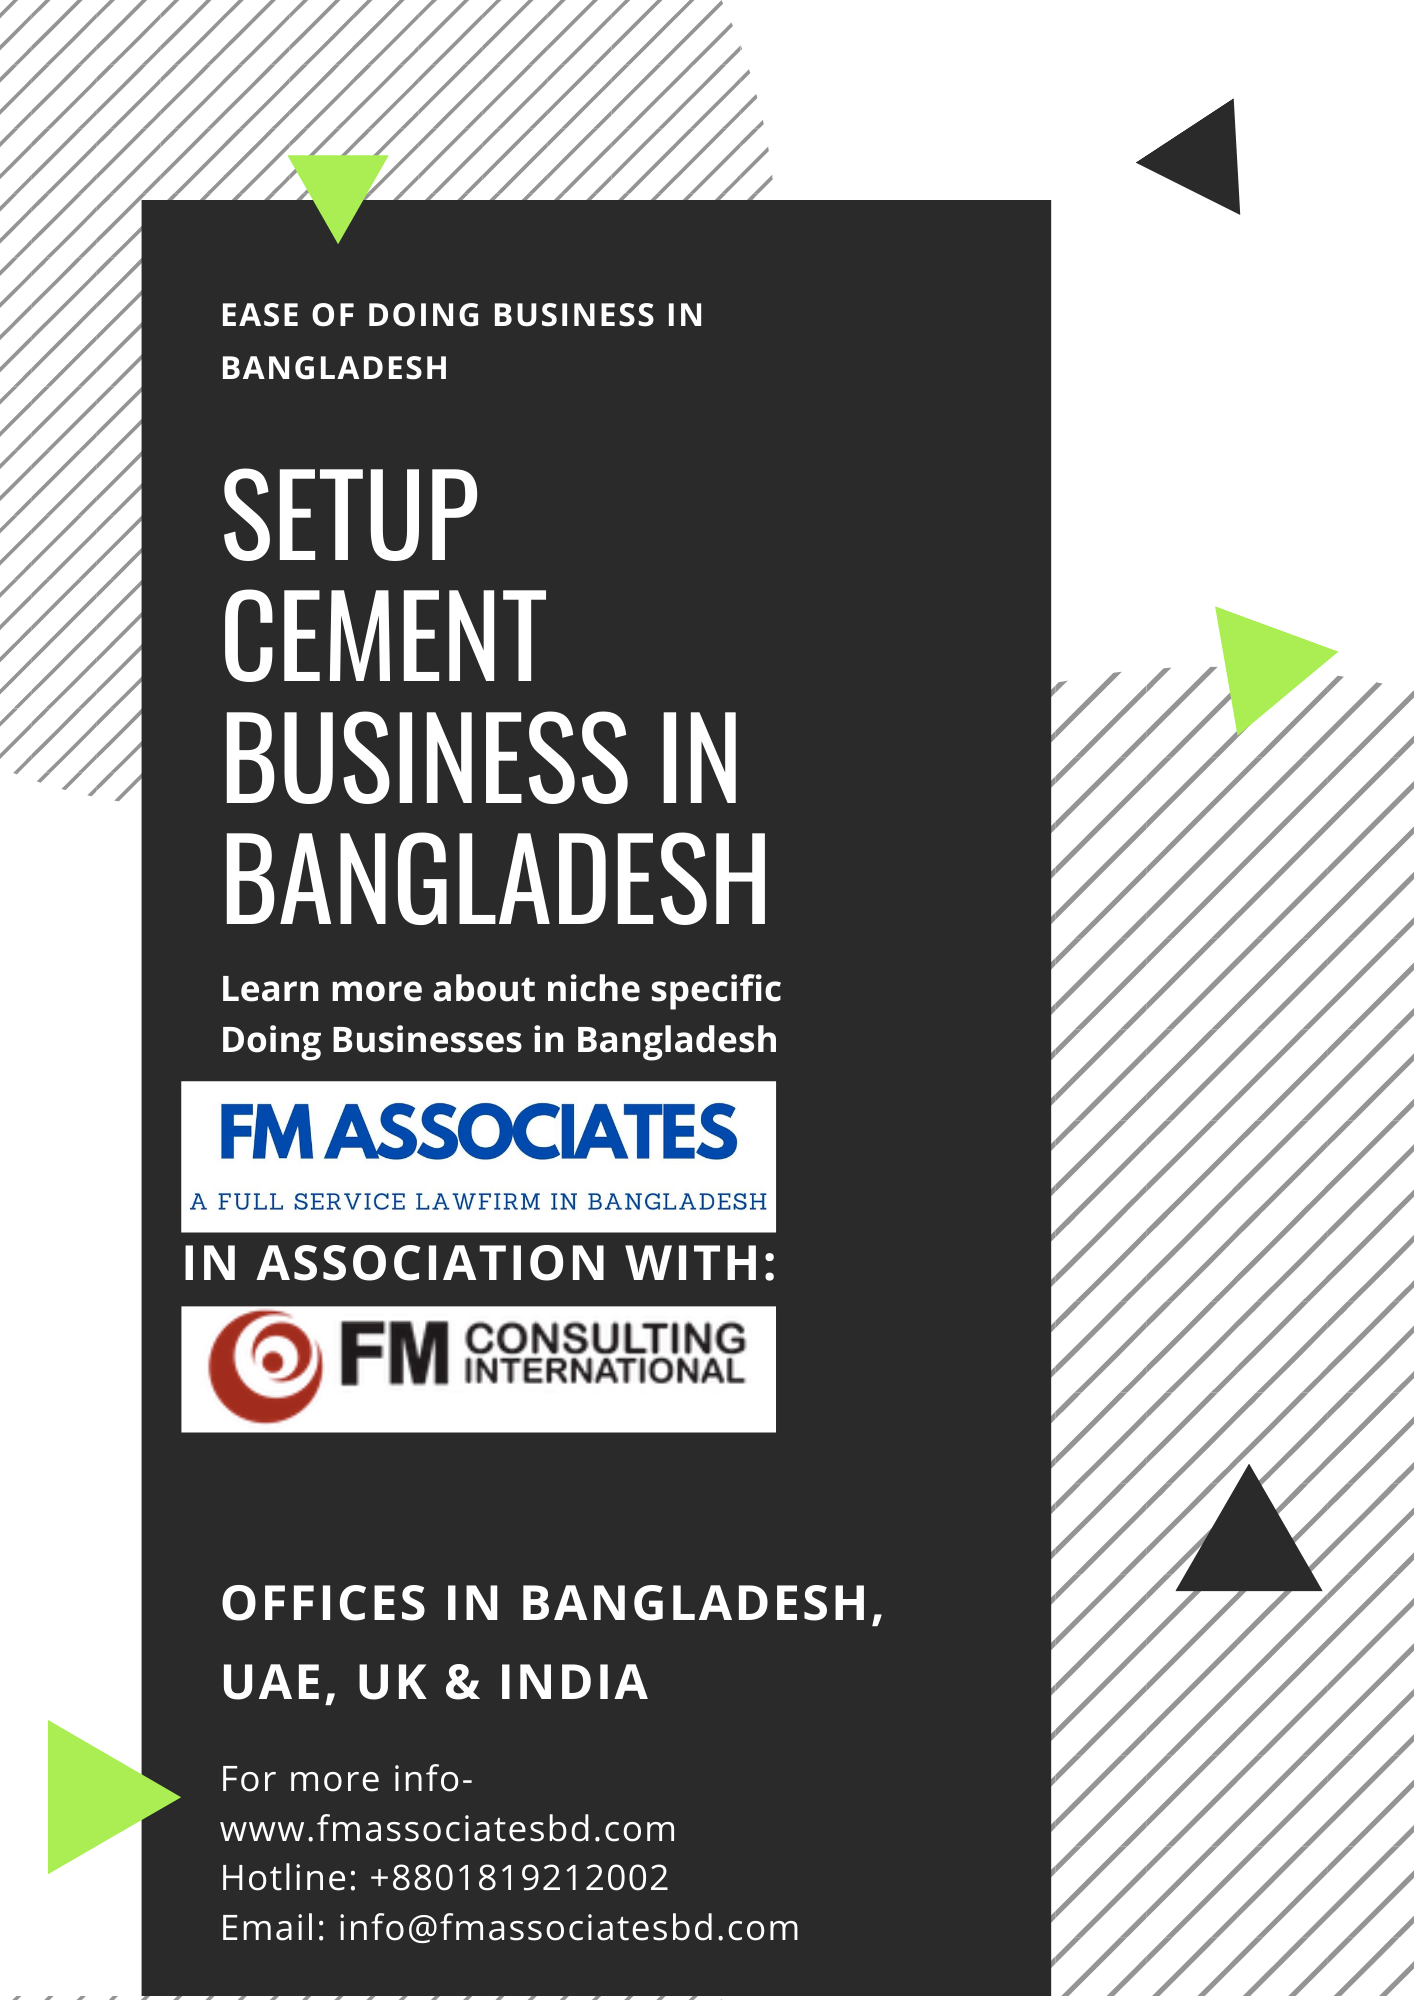 How to Setup Cement Business in Bangladesh